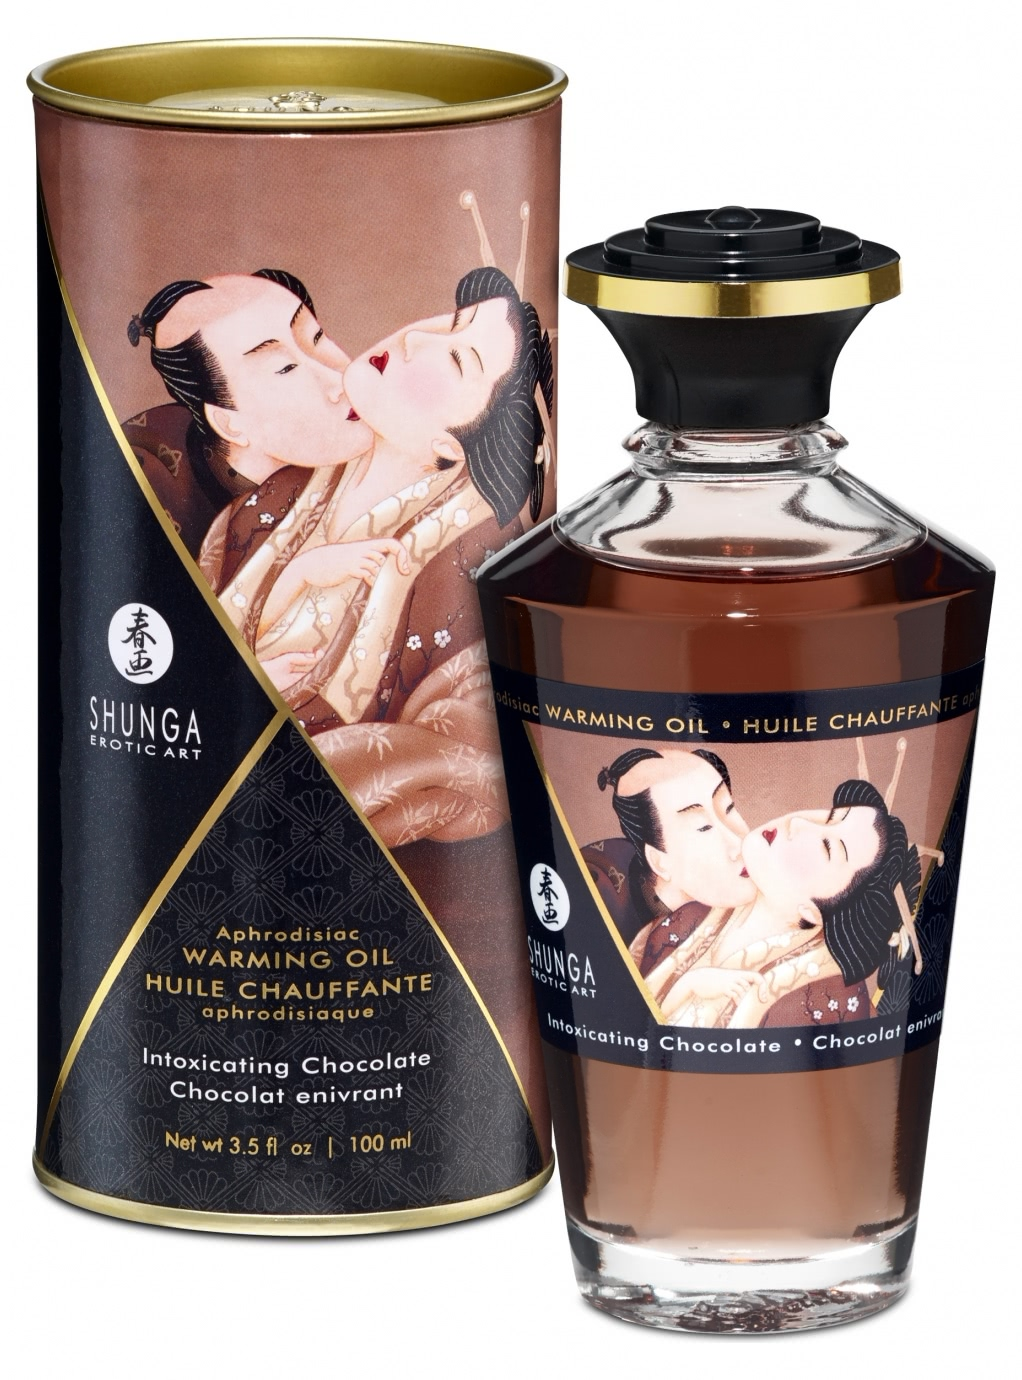 Aphrodisiac Warming Oil Chocolate 100ml